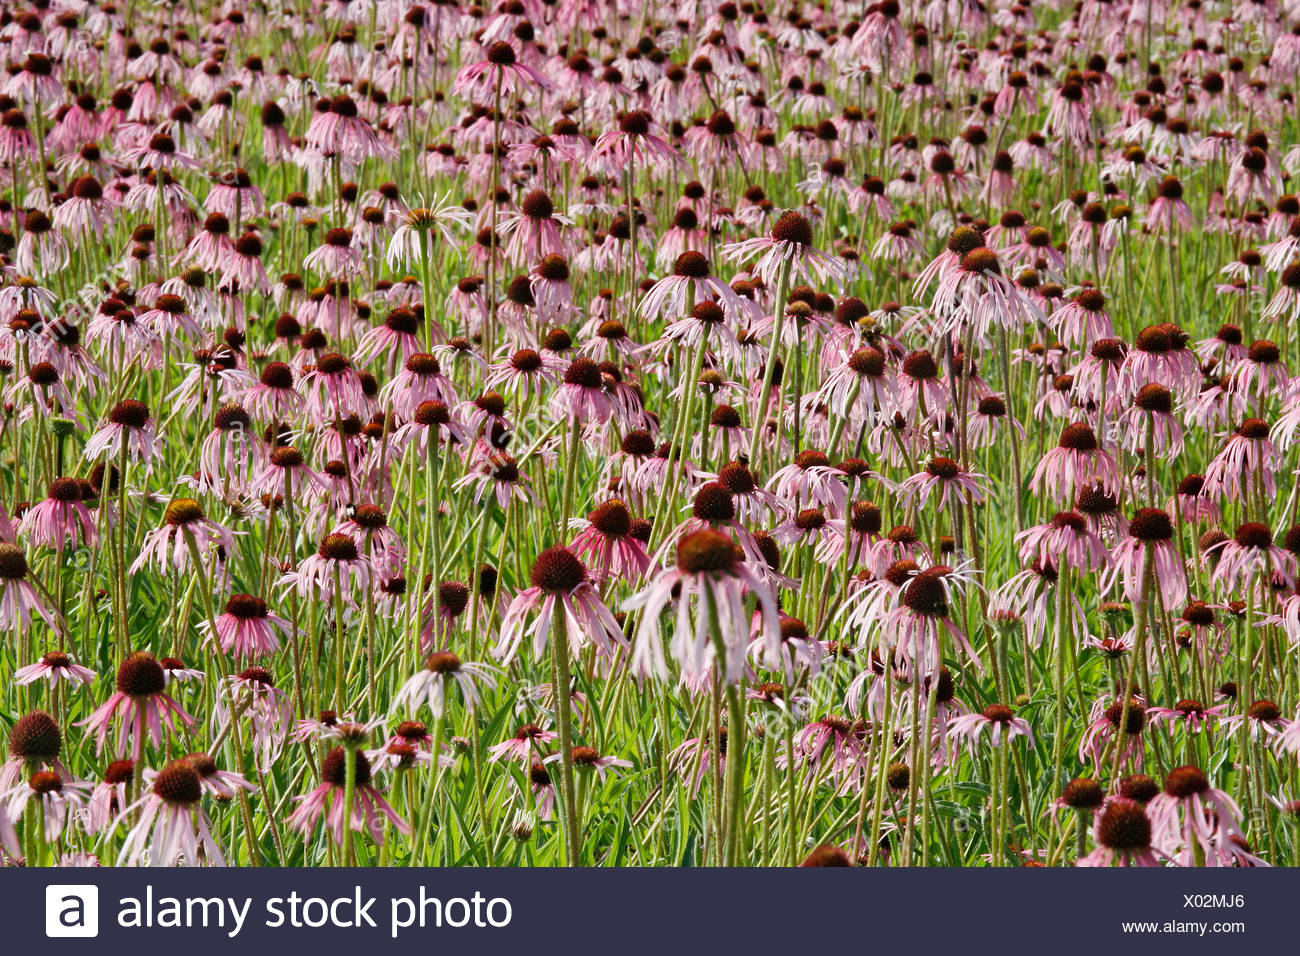 Field of Pale Purple Coneflowers (Echinacea pallida), medicinal plant, Heilsbronn near Ansbach, Bavaria, Germany - Stock Image